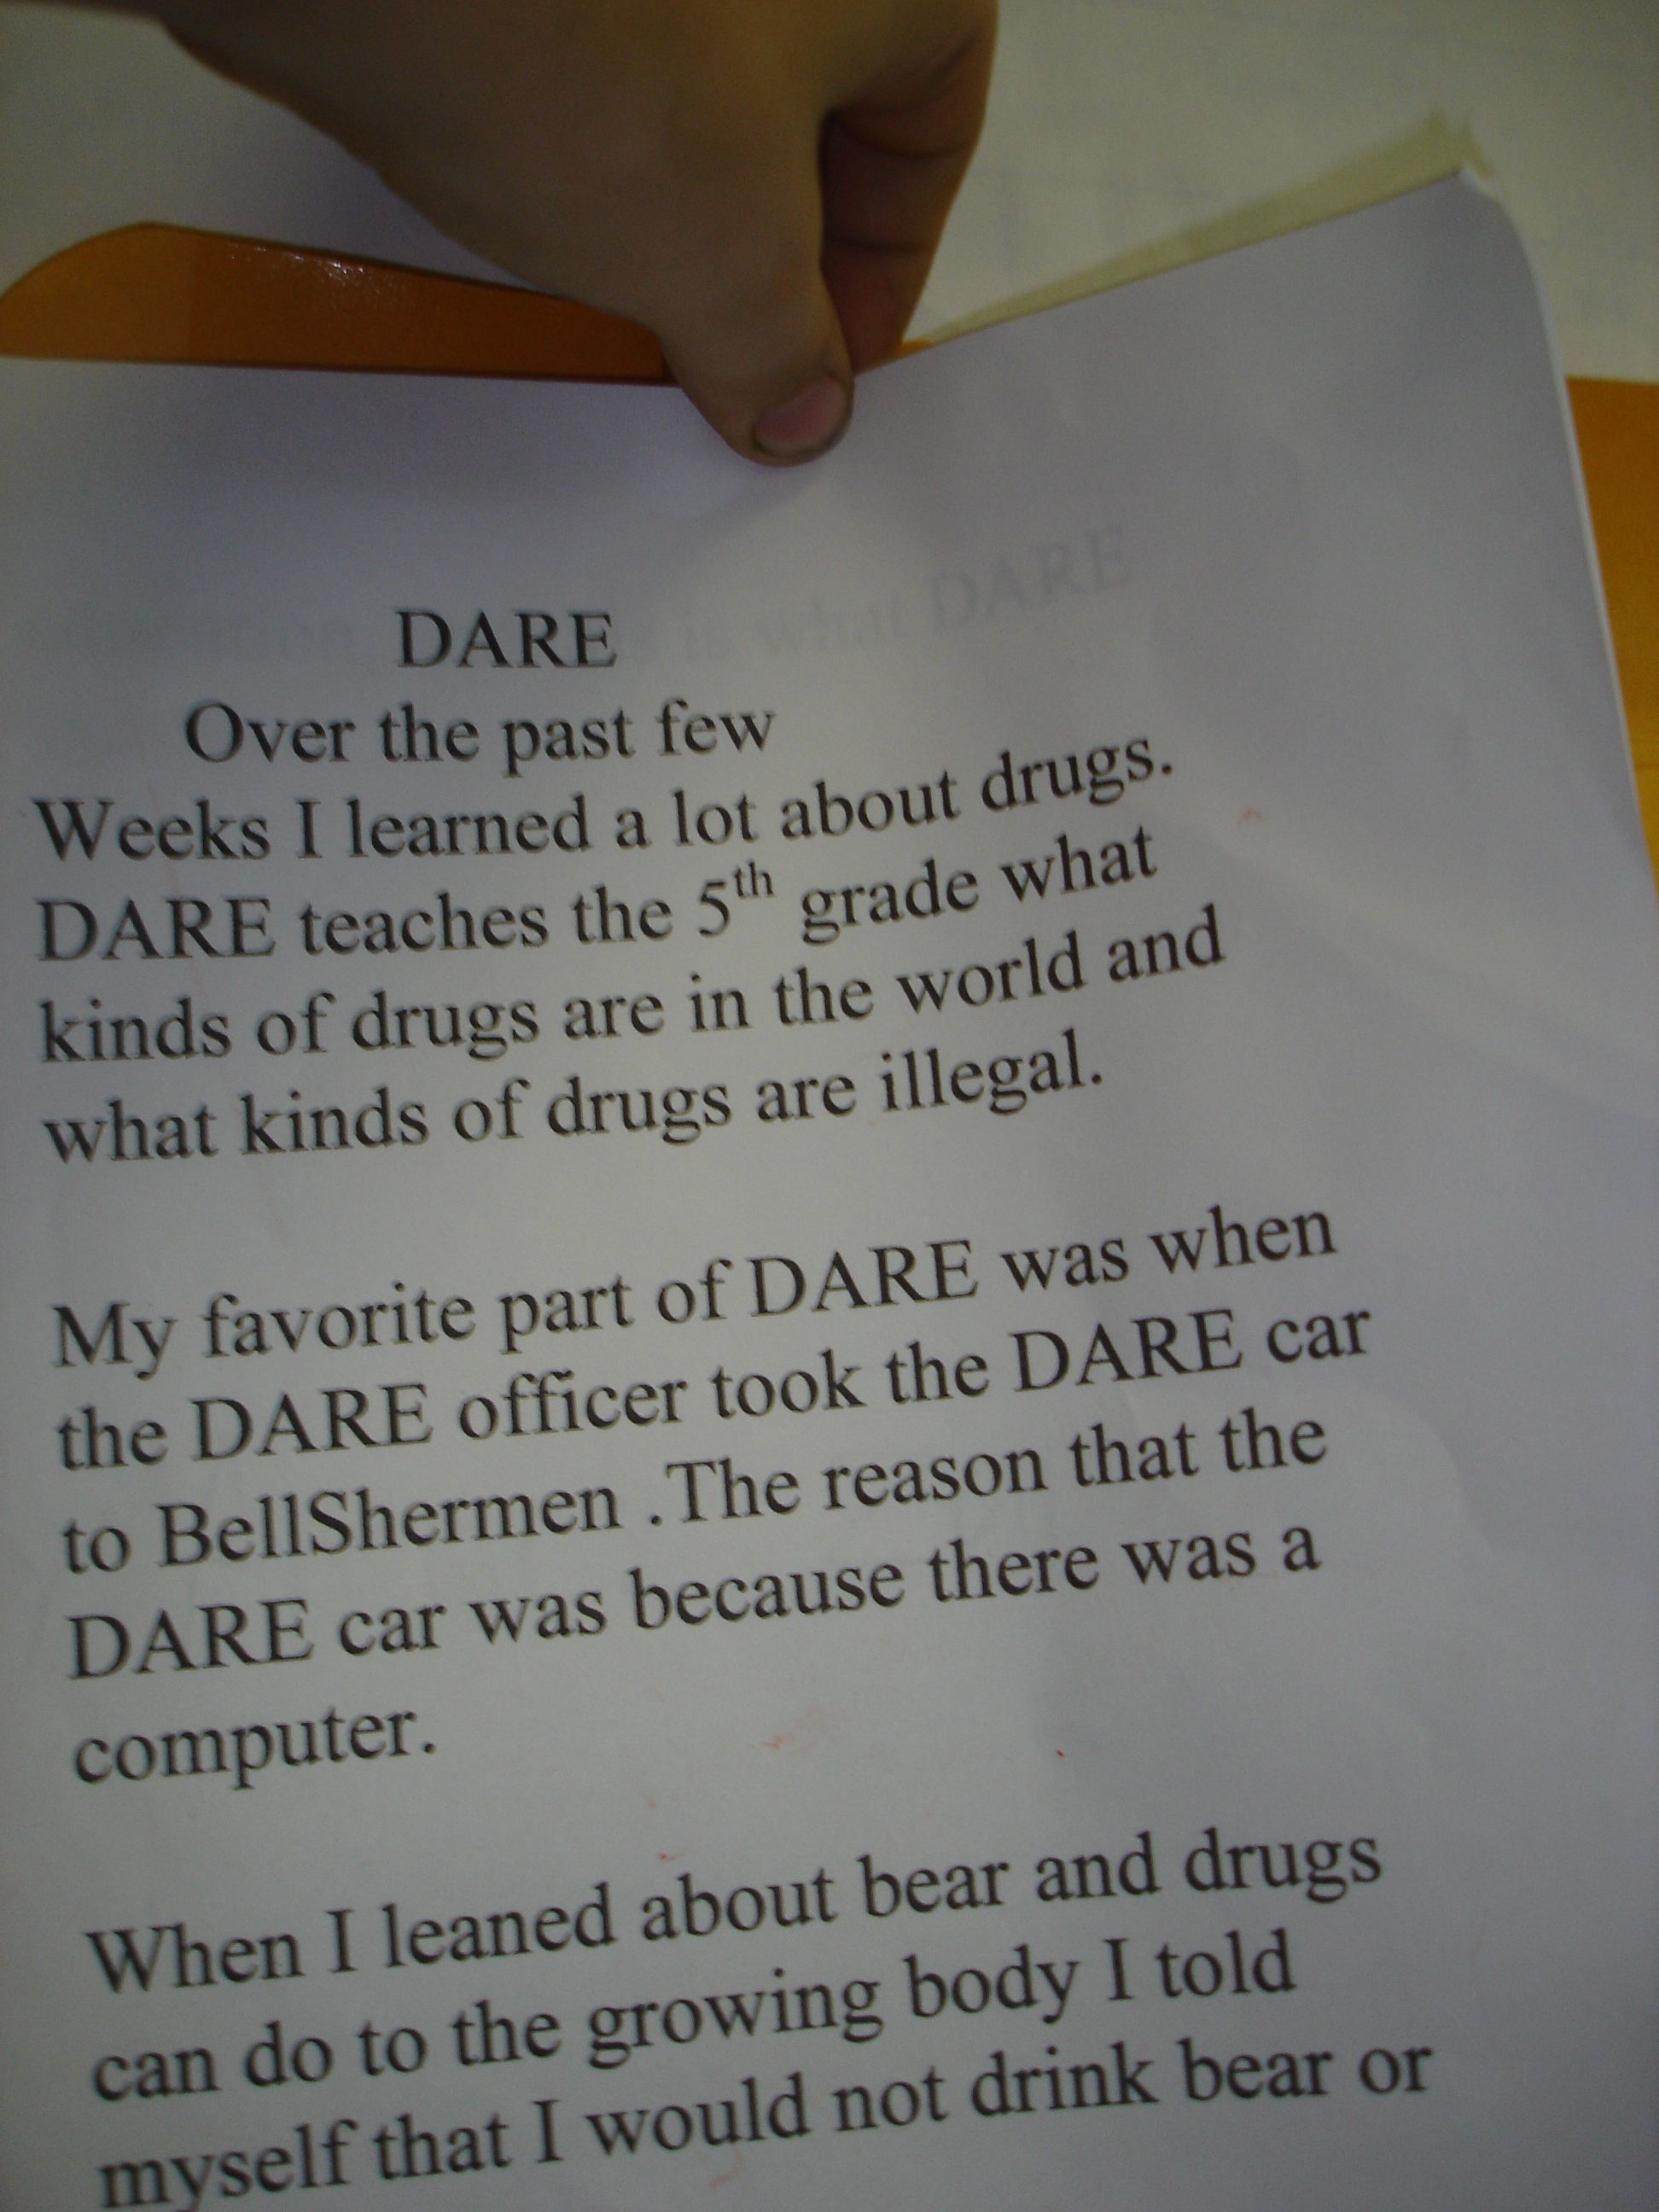 dare essay 5th grade 2011